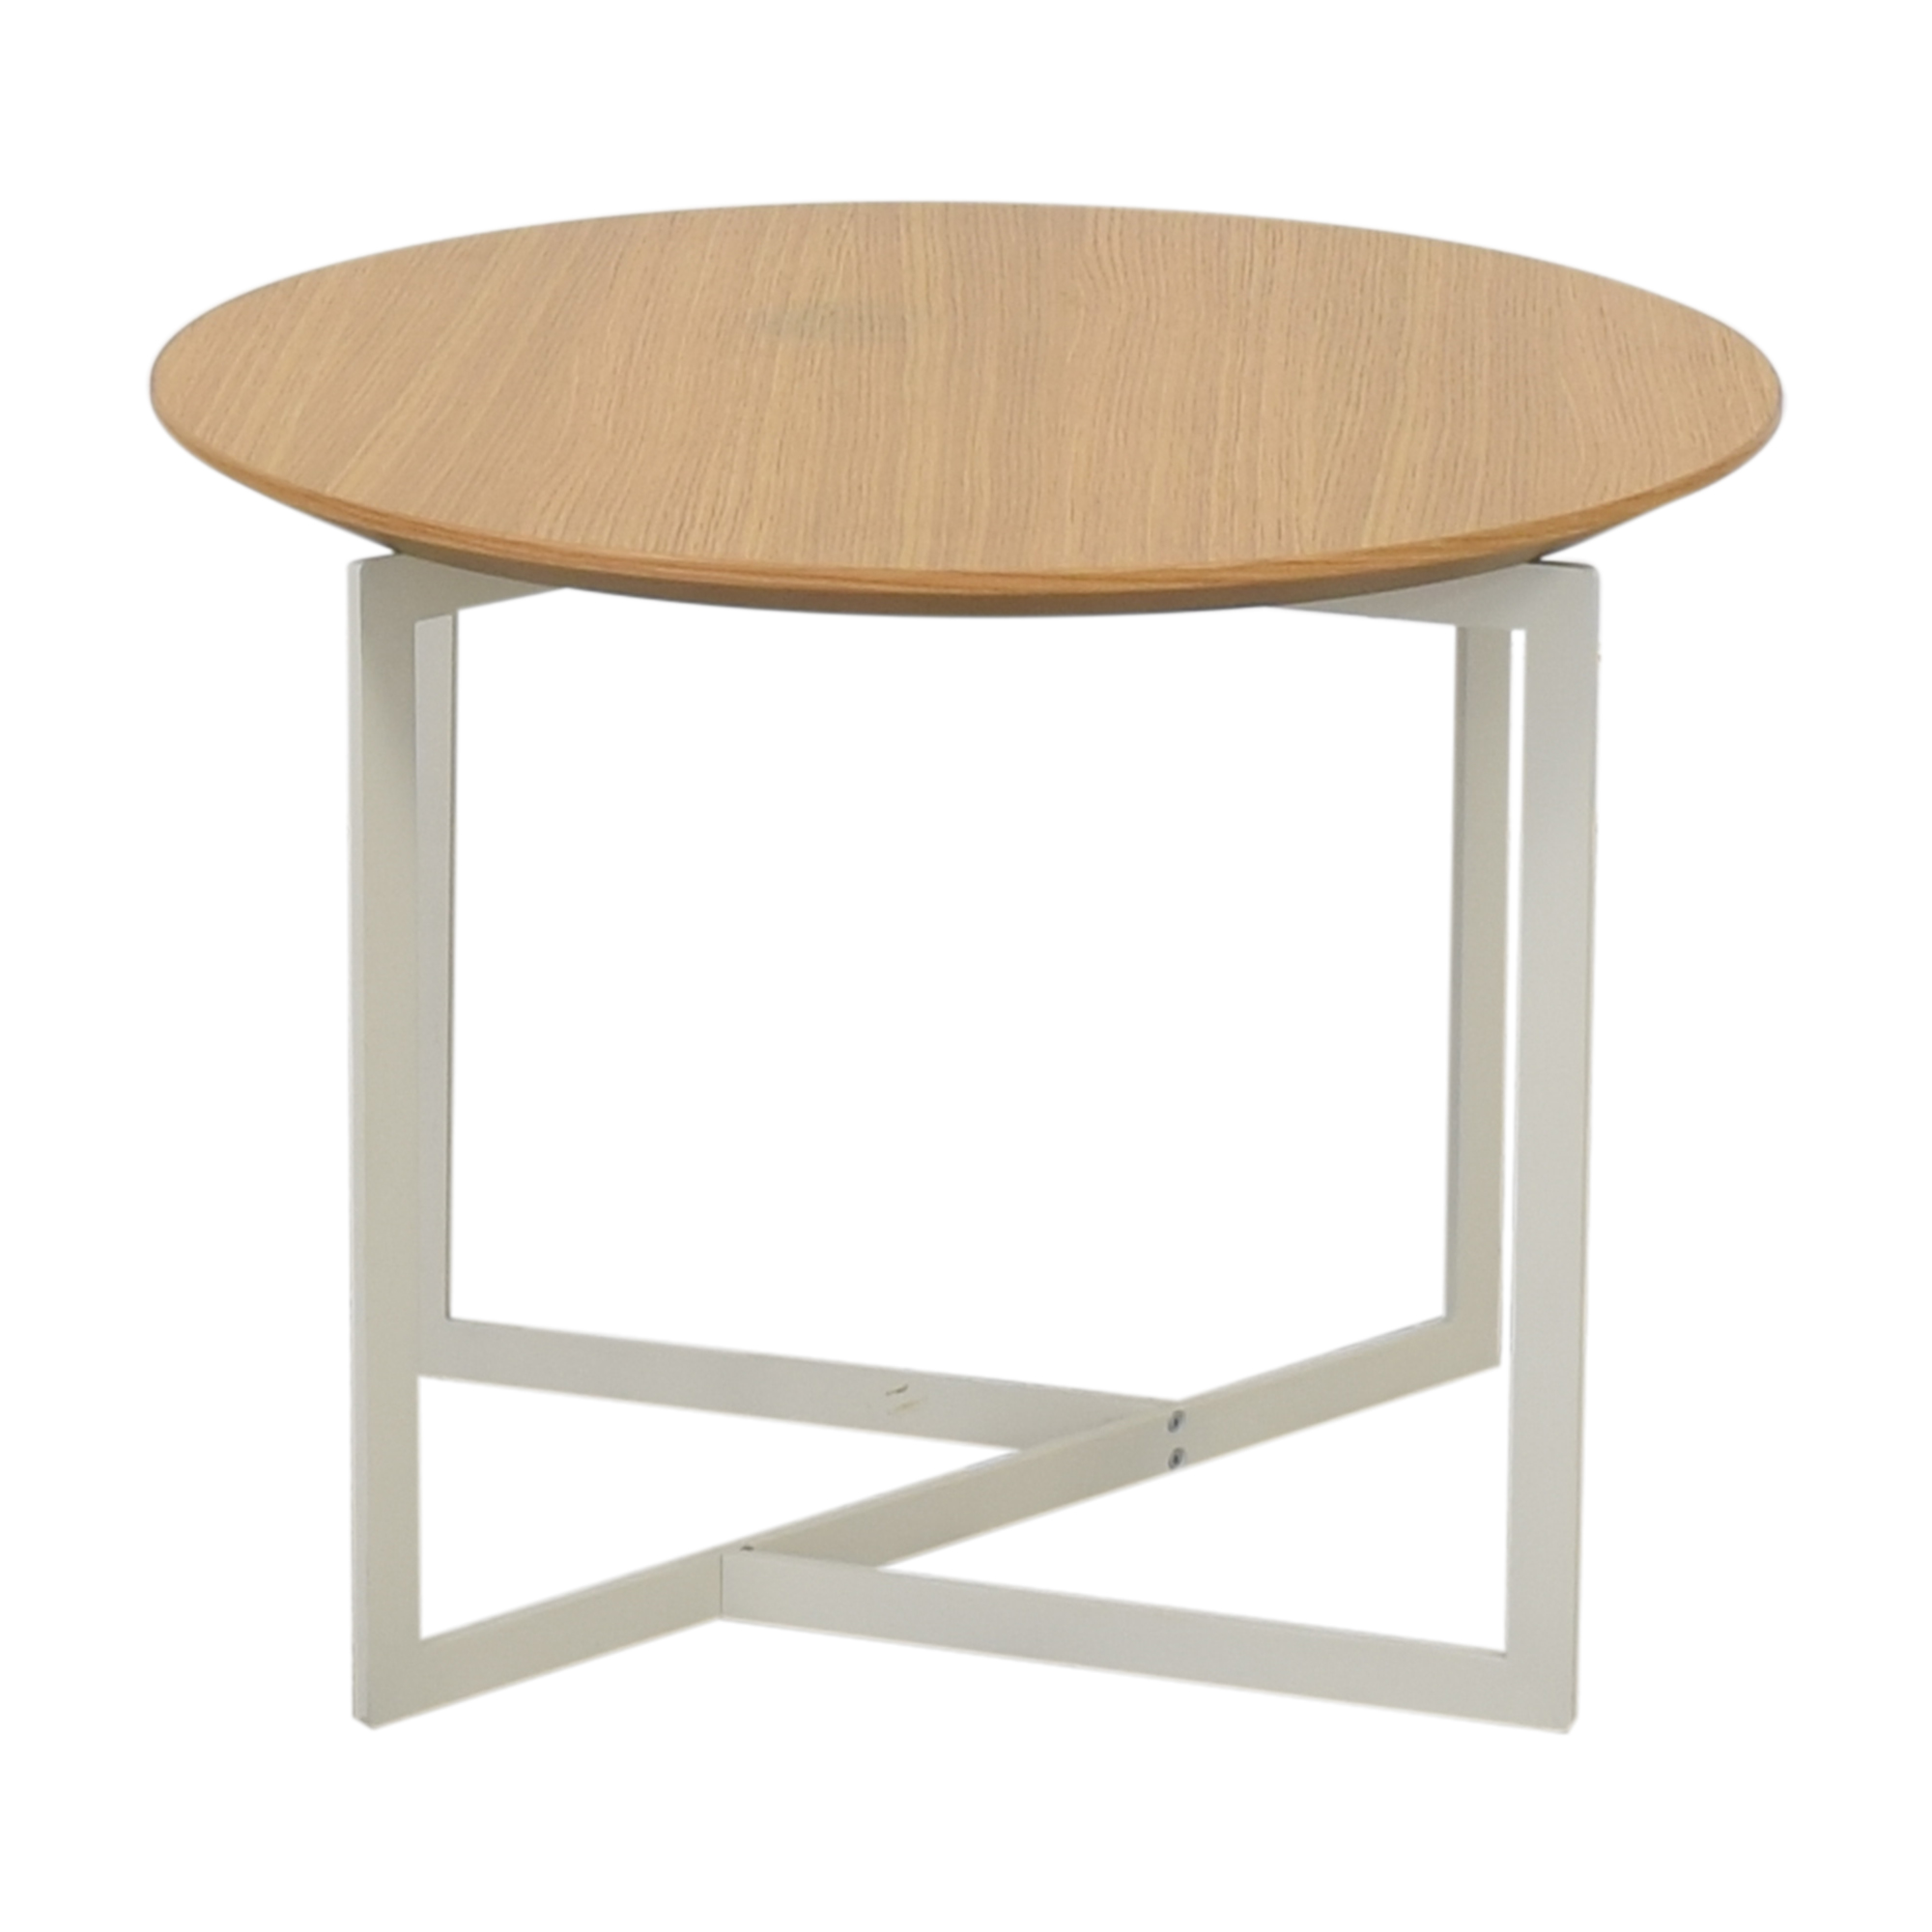 buy Koleksiyon Terna Dining Table Koleksiyon Dinner Tables